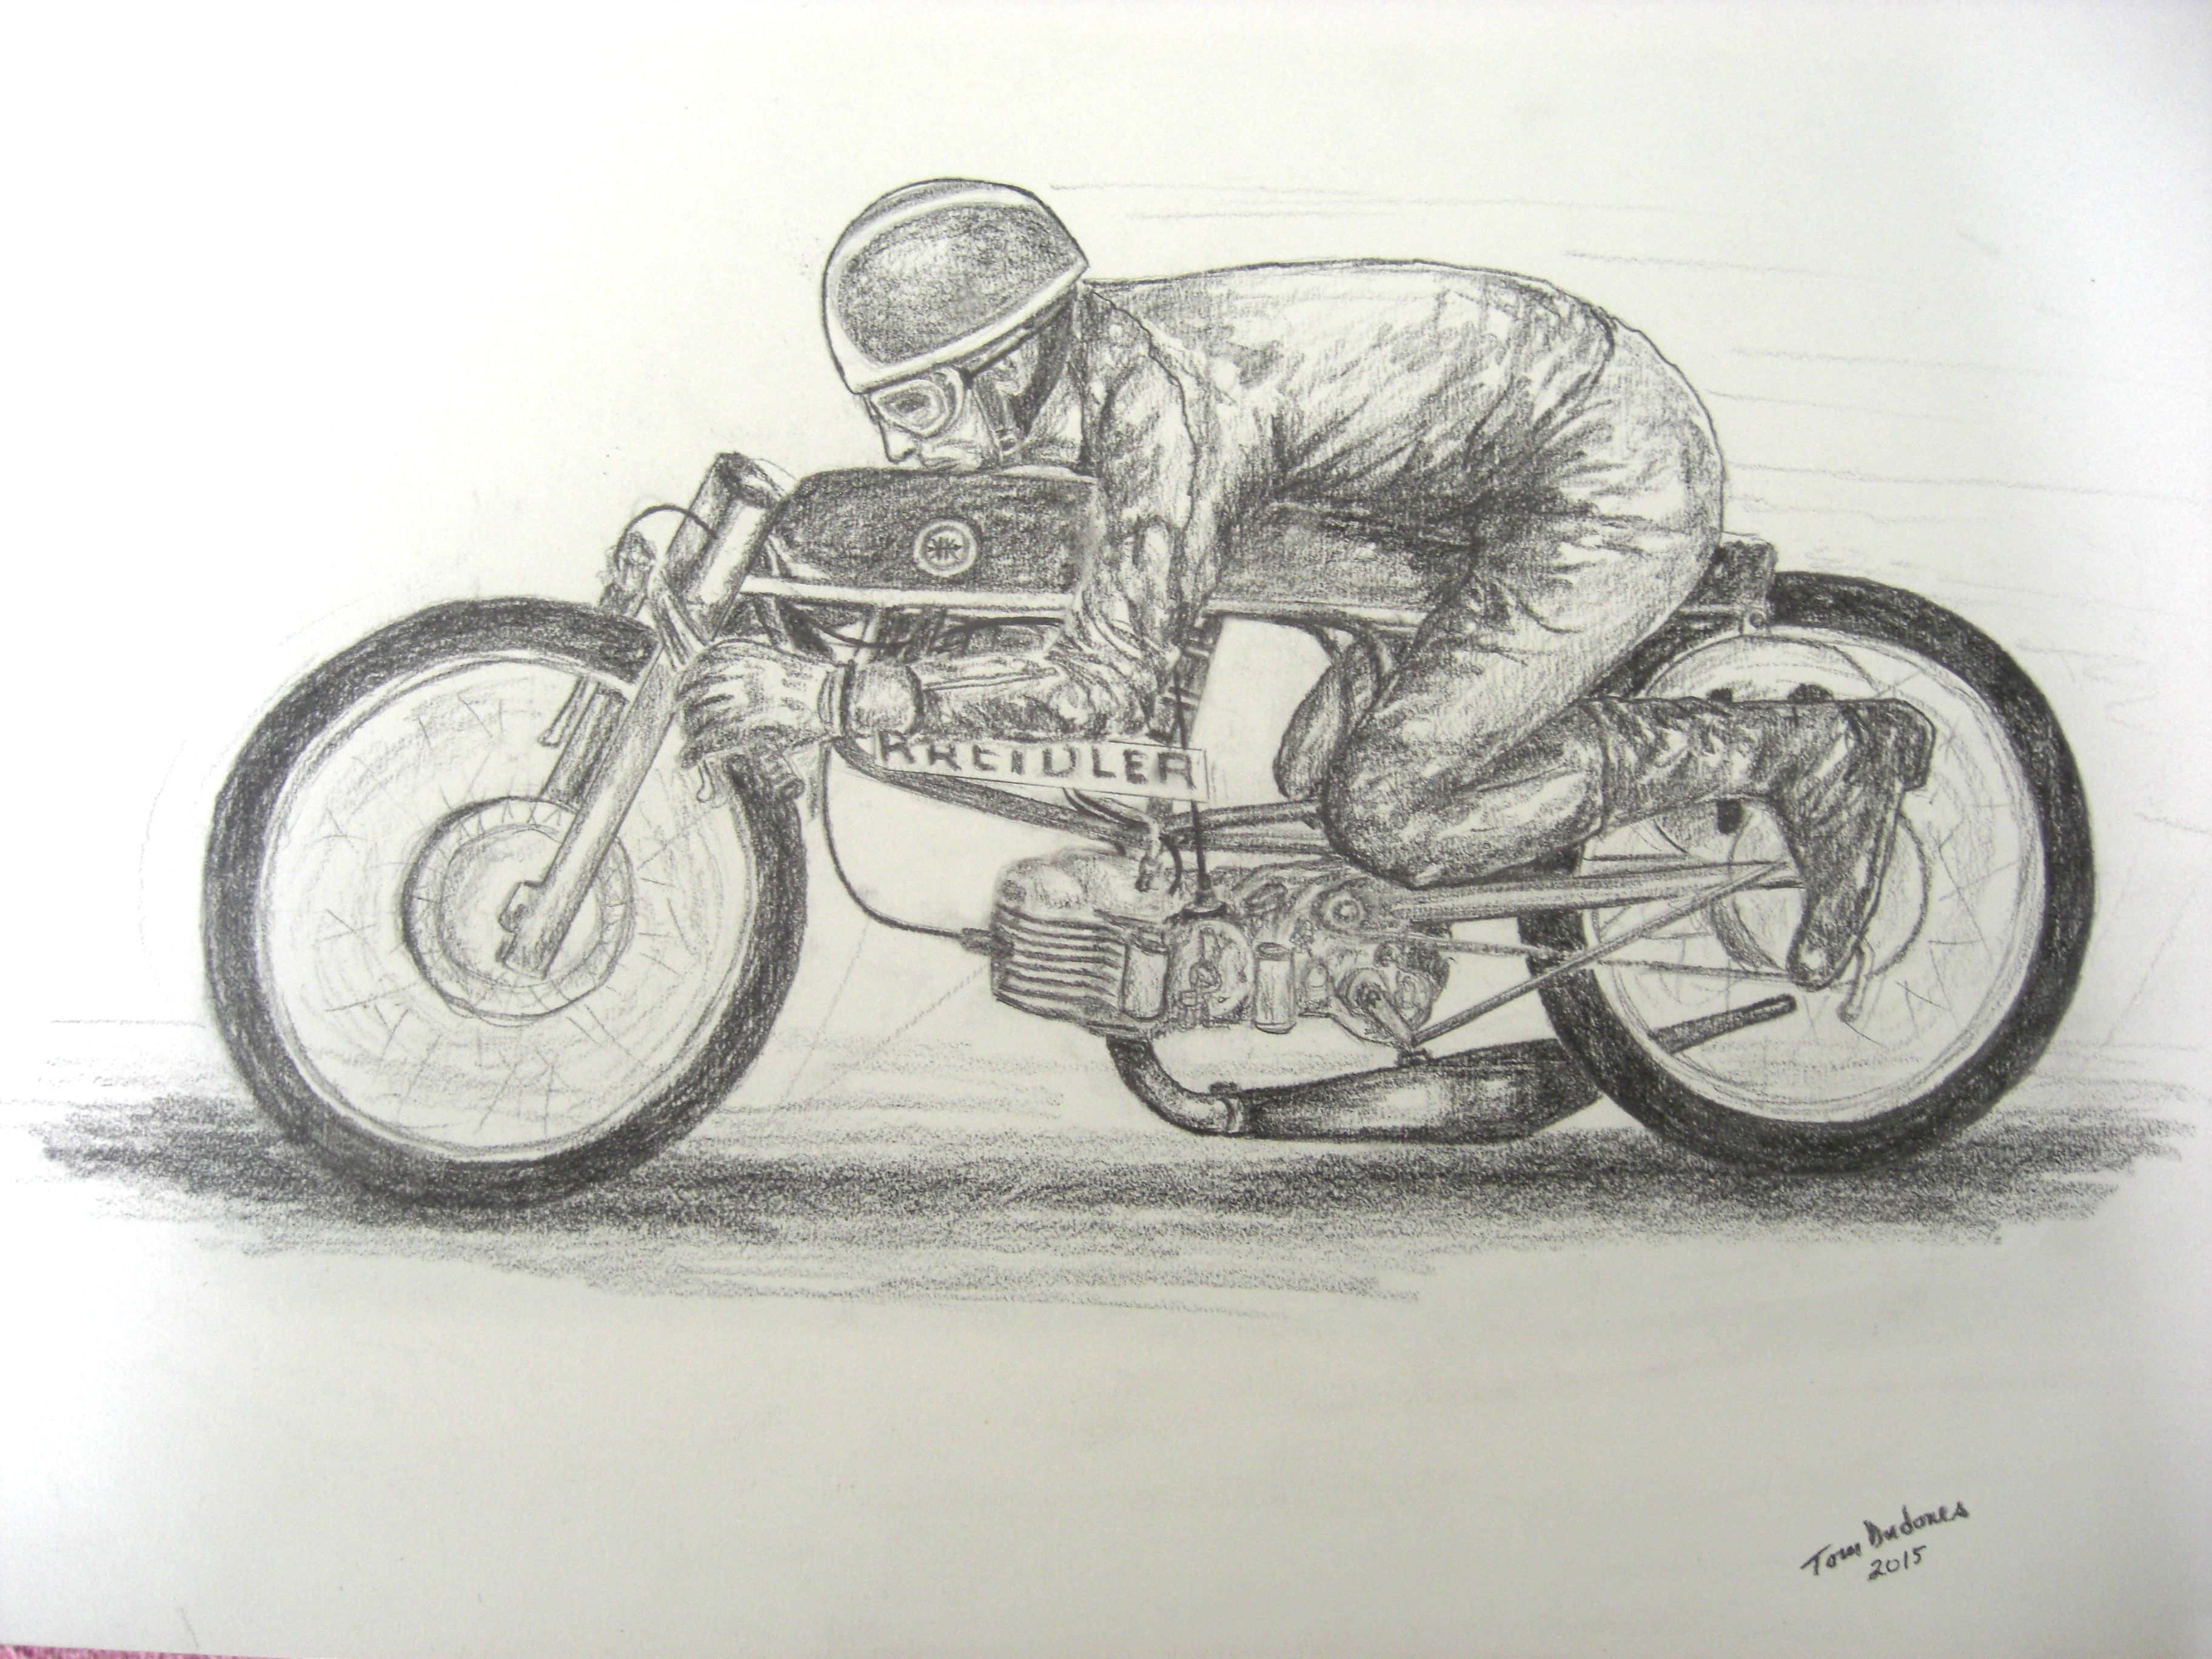 1-Aalt Toersen, 50cc Kreidler - record attempt, 1968, Elvington RAF, UK.14x17, graphite pencil, completed march 10, 2015.